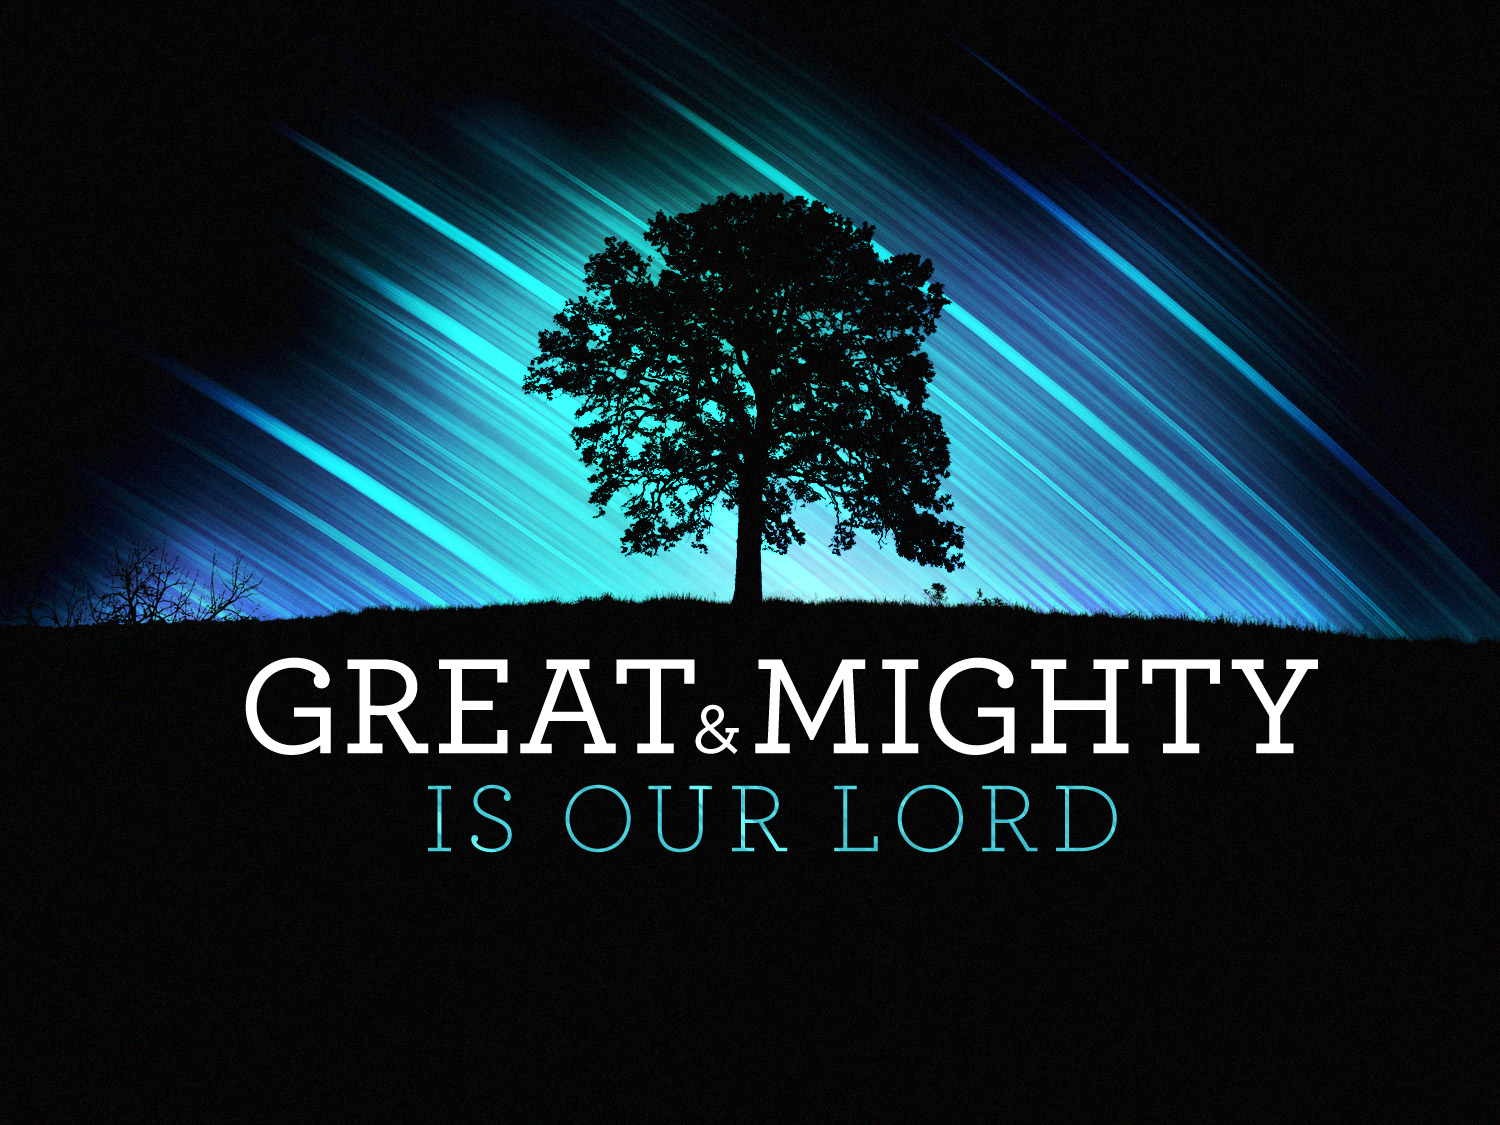 great and mighty is our lord